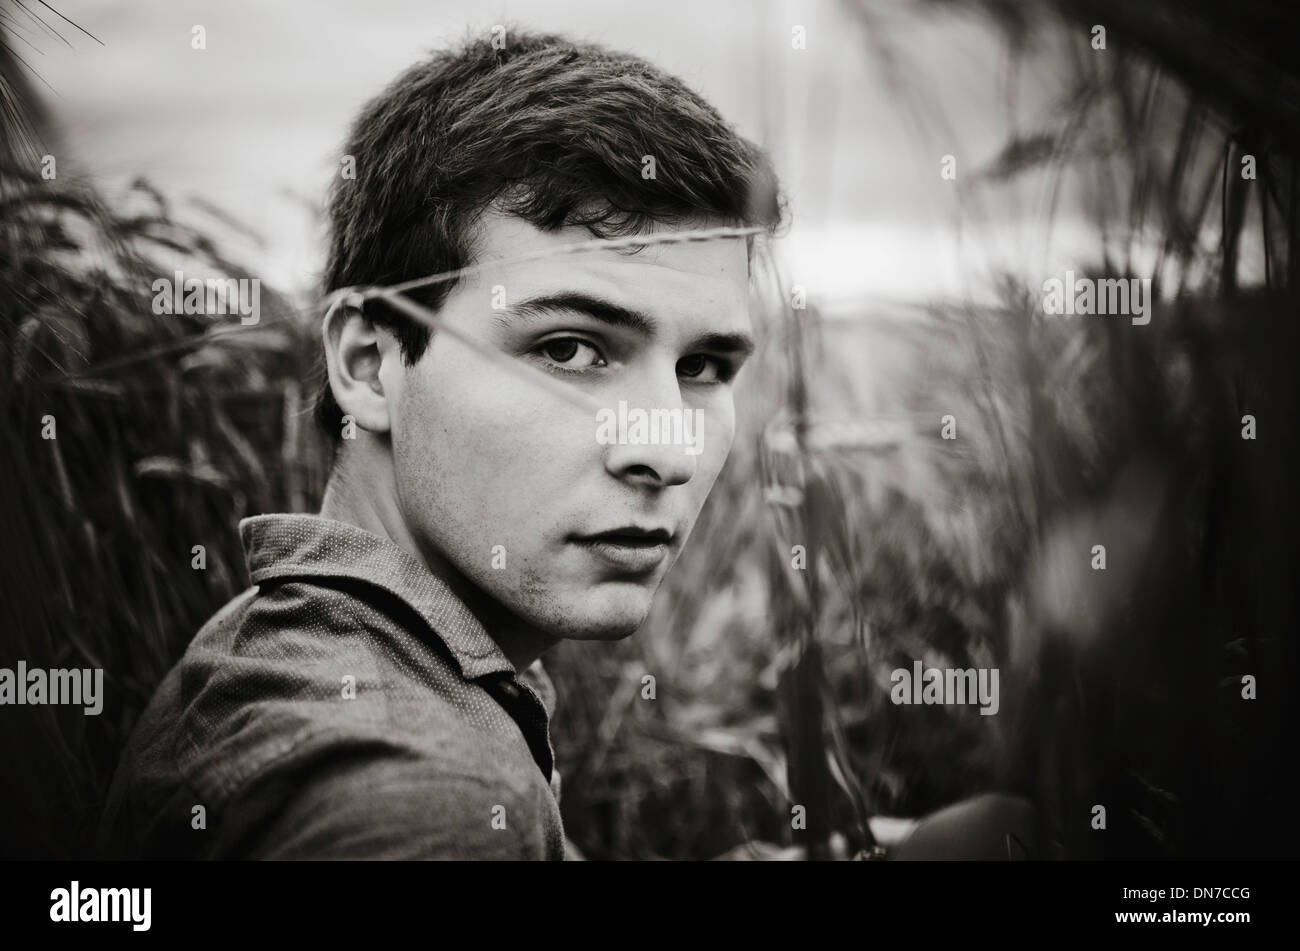 Young man standing in cornfield, portrait - Stock Image